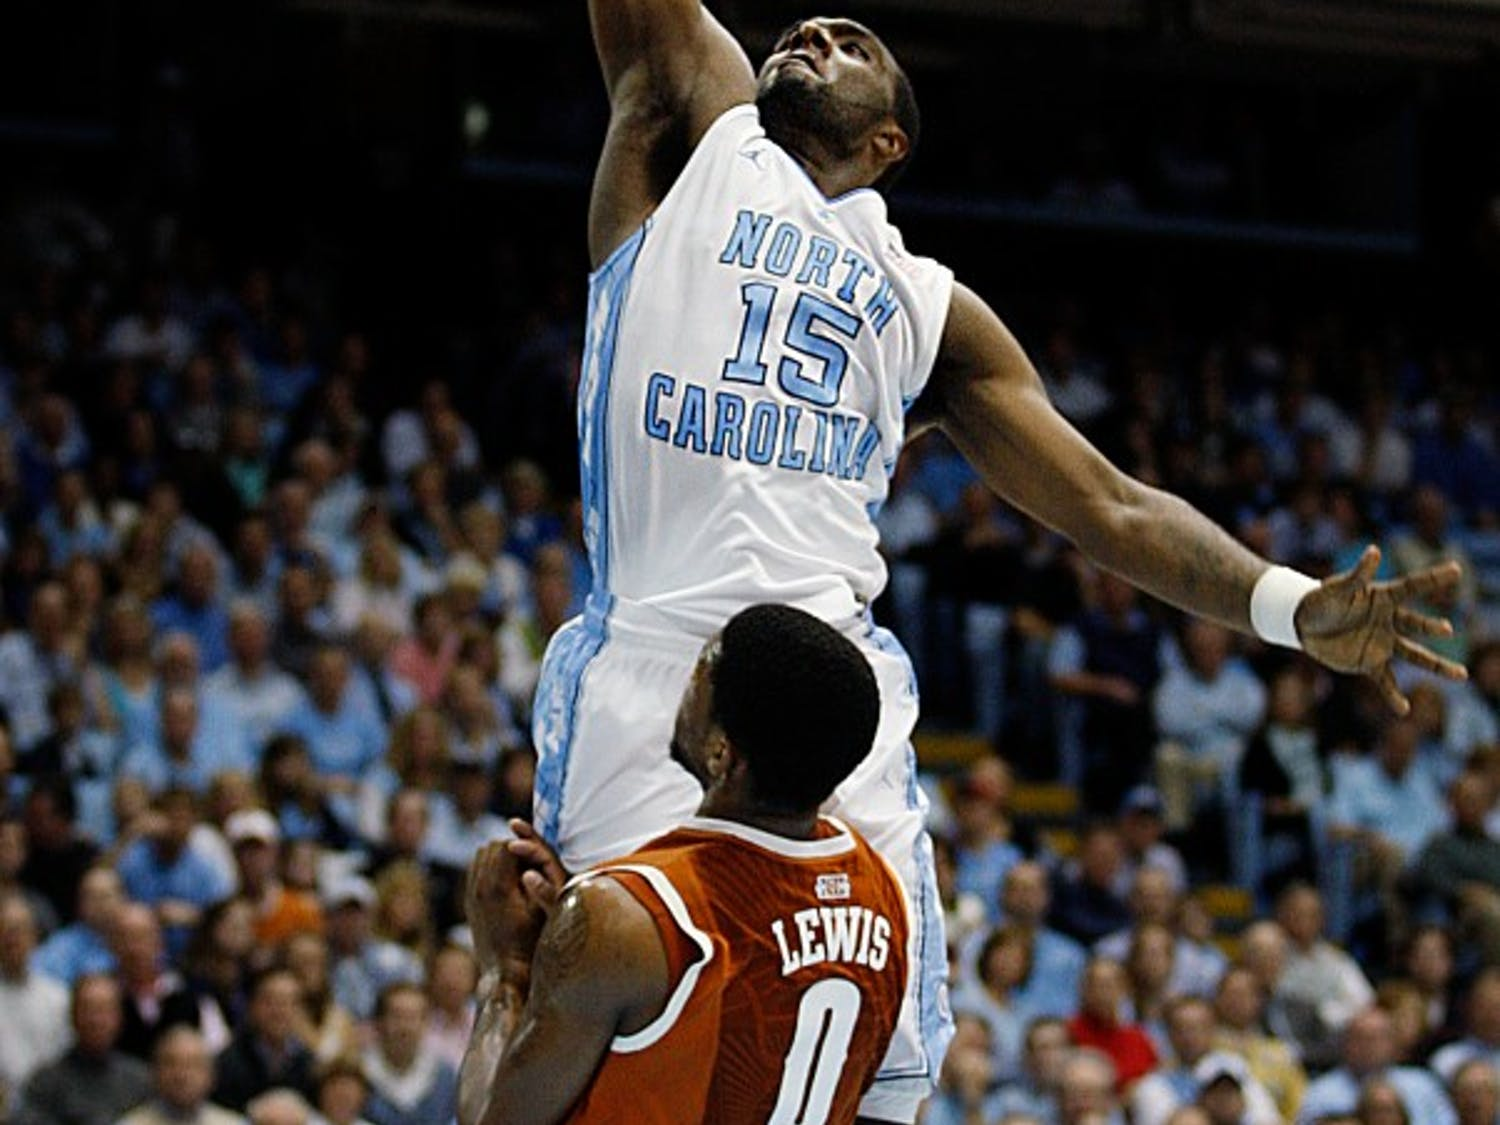 UNC guard P.J. Hairston dunks the ball over Texas guard Julien Lewis during the game Wednesday at the Dean E. Smith Center. Hairston had 5 points in the Tar Heels 82-63 win over Texas.